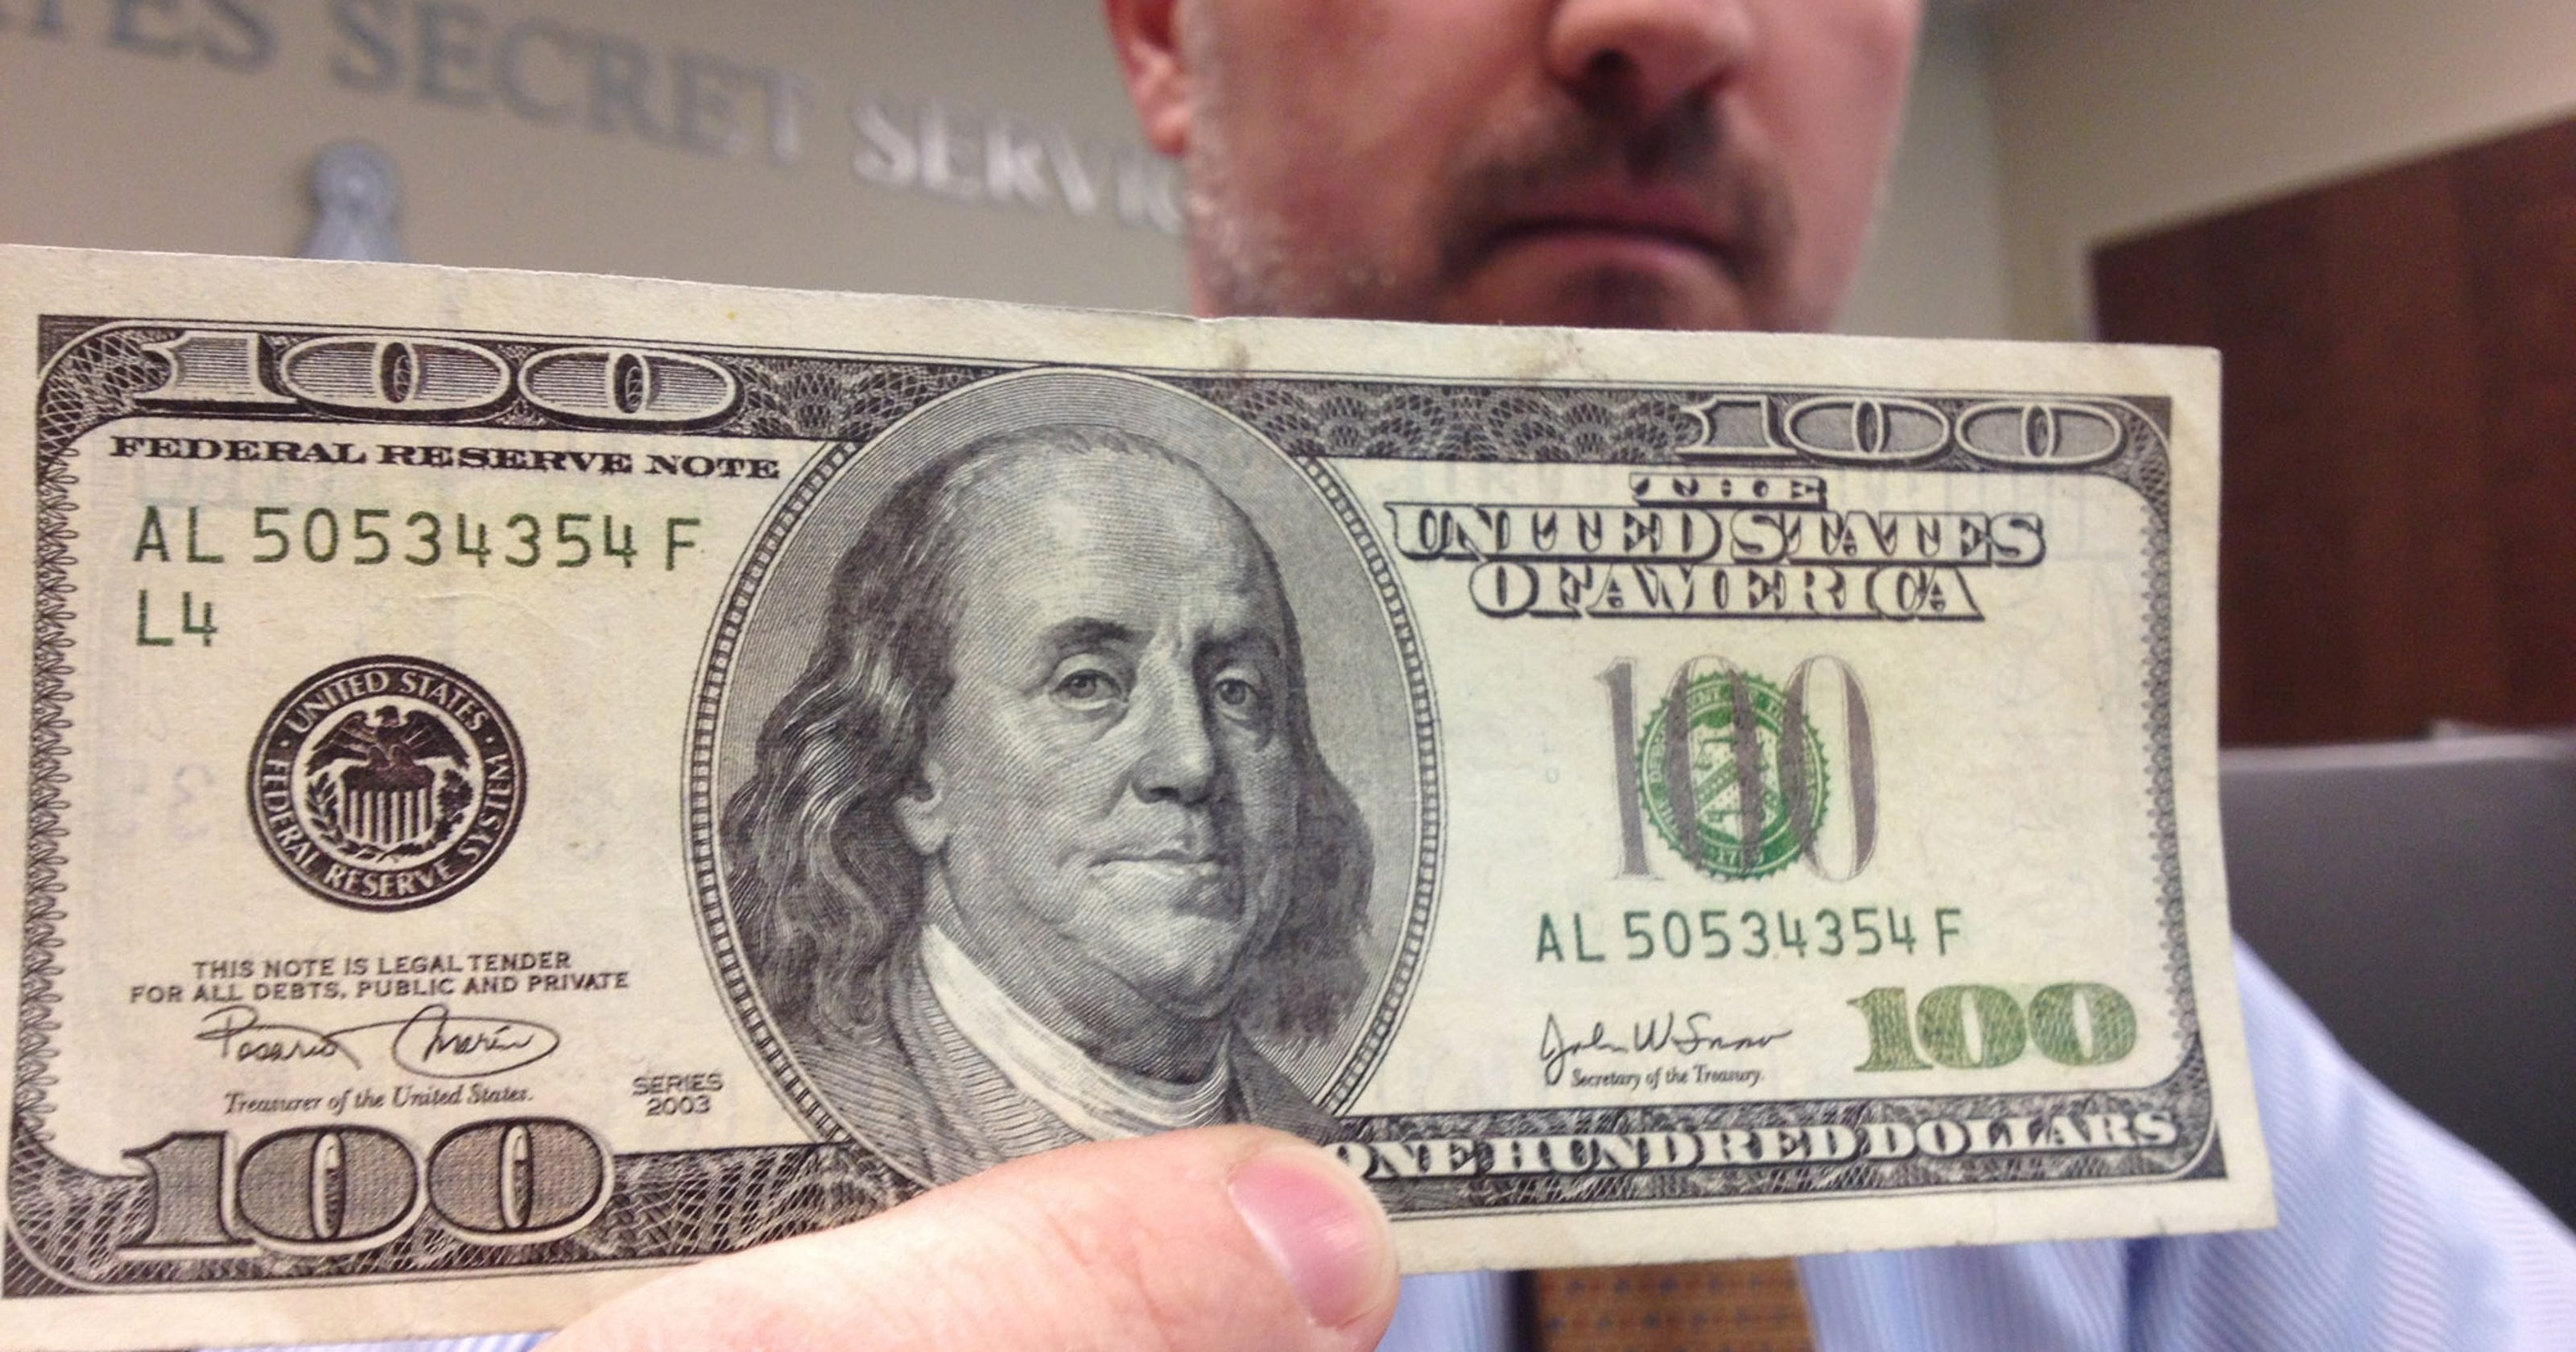 Counterfeiters use digital technology to their benefit